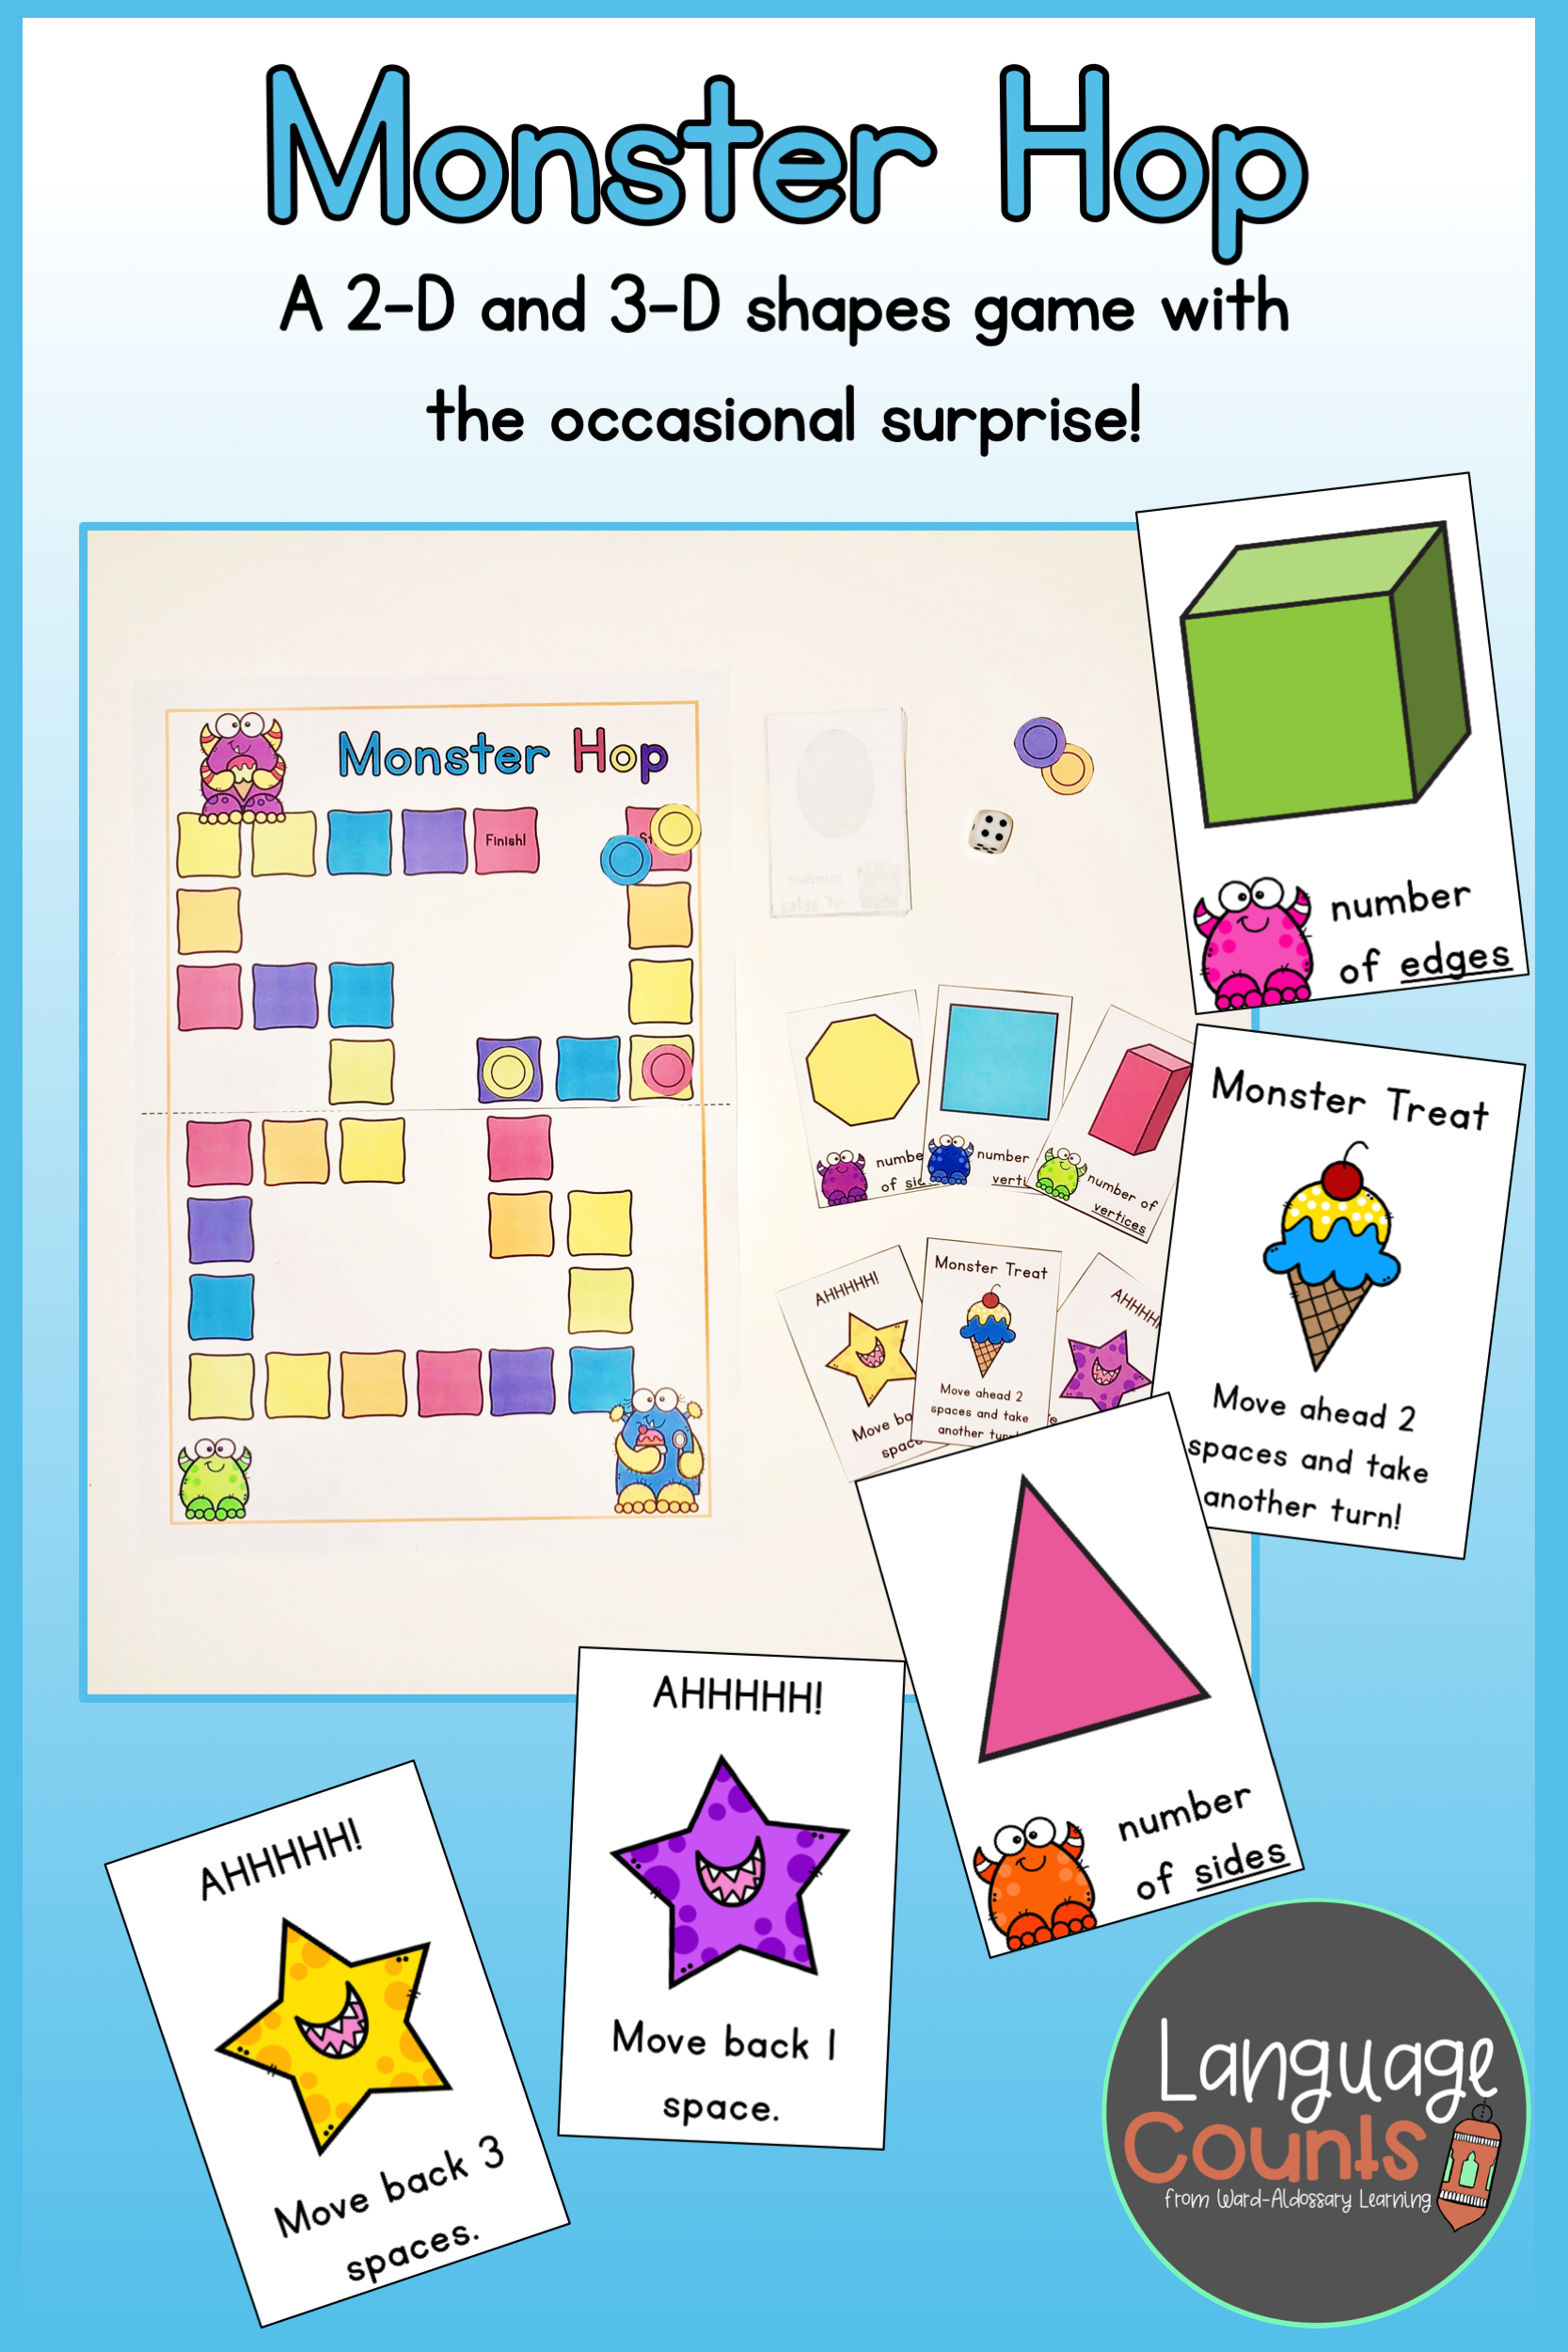 Geometry Attributes Game 2d And 3d Shapes